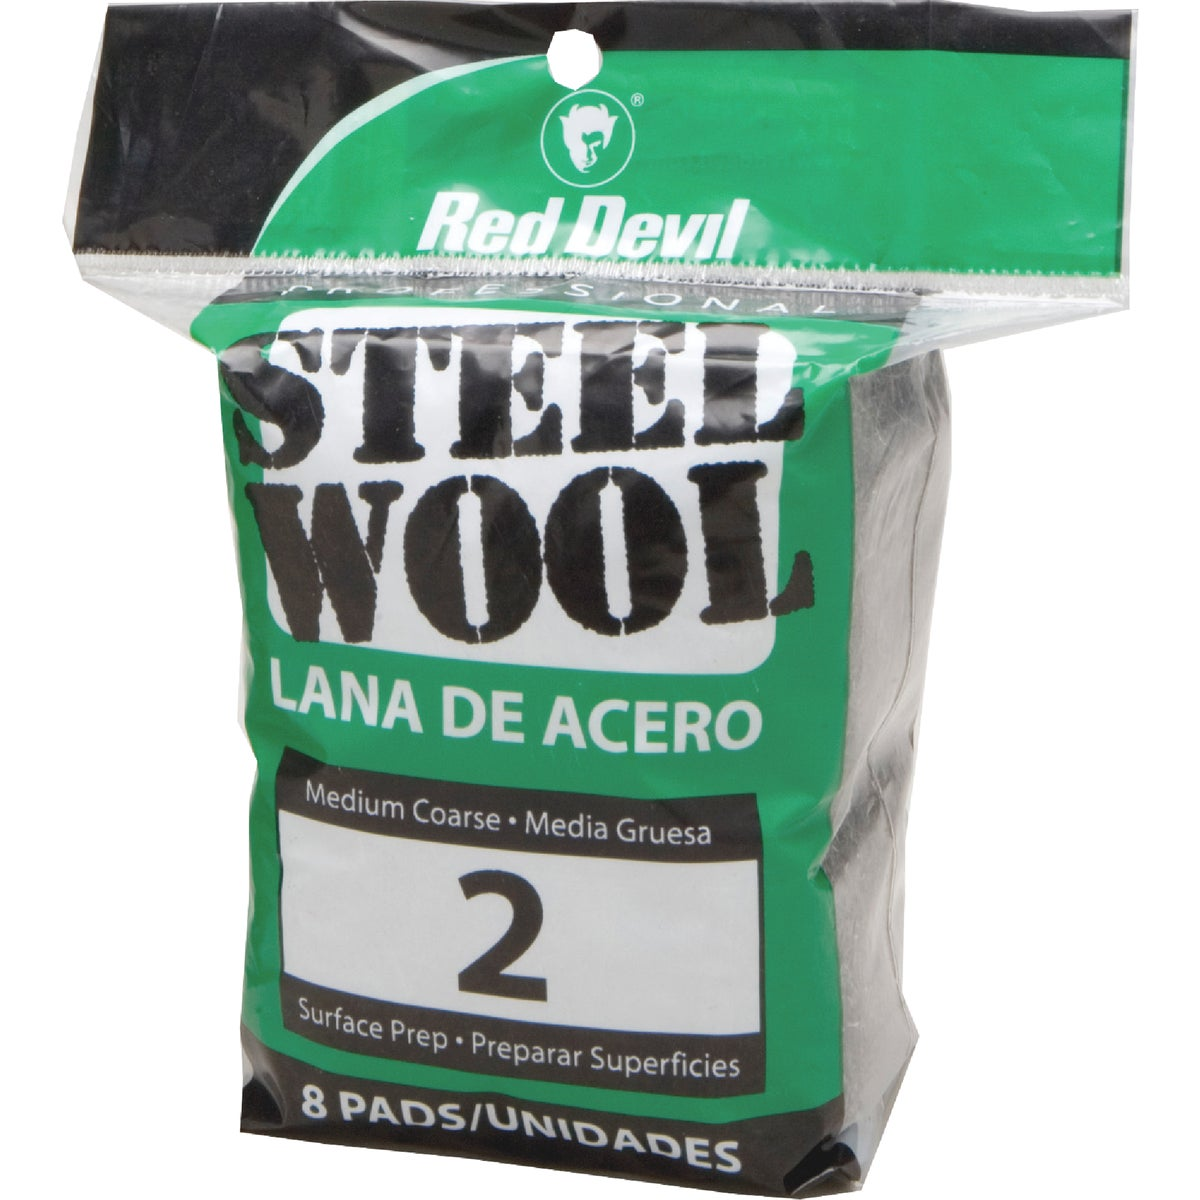 8PK #2 STEEL WOOL - 0325 by Red Devil